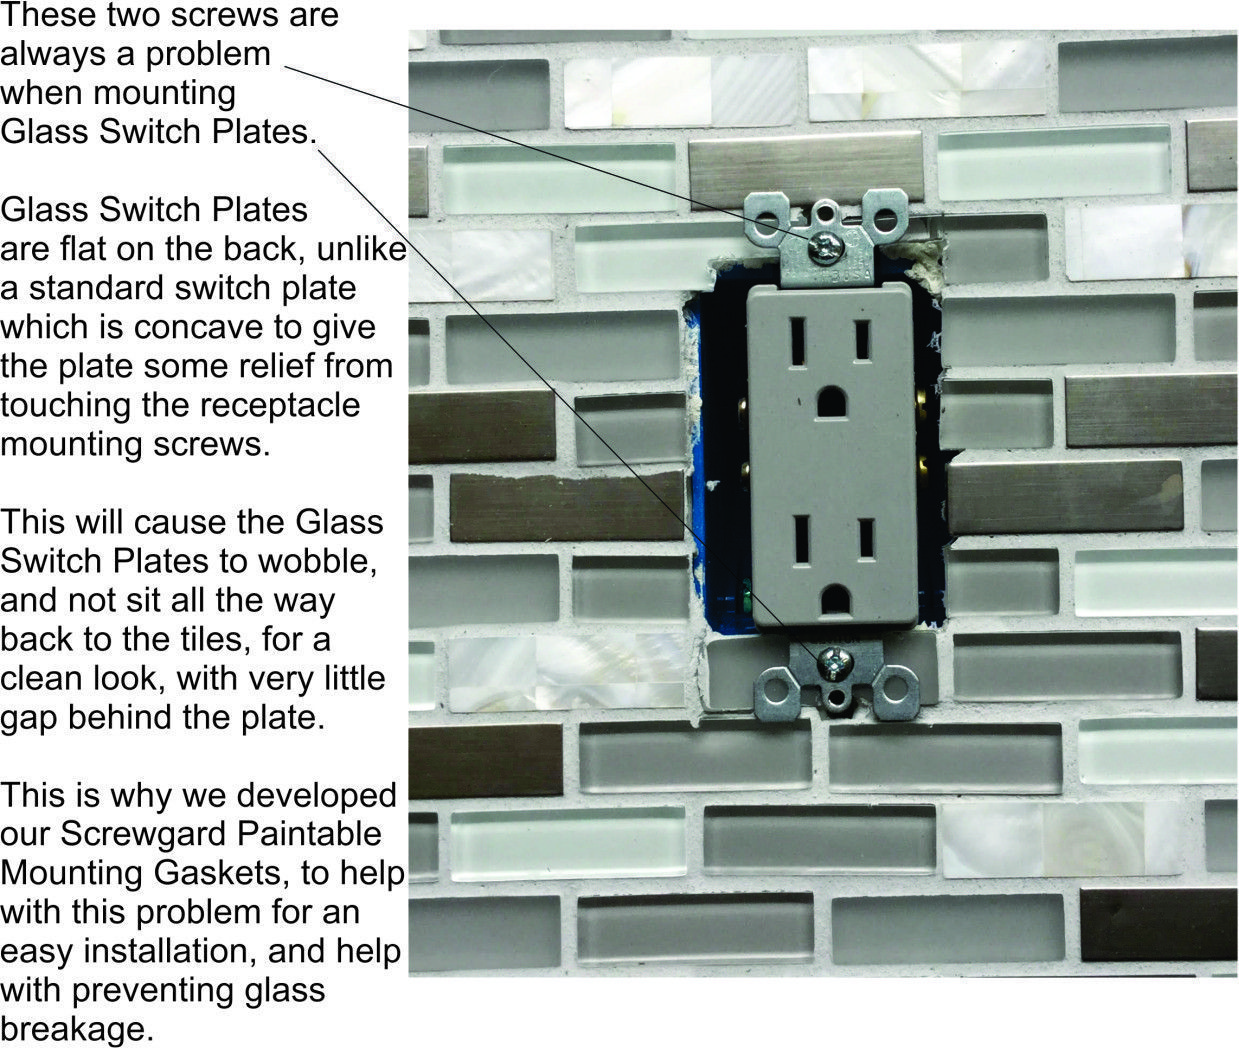 glass switch plates_instructive image